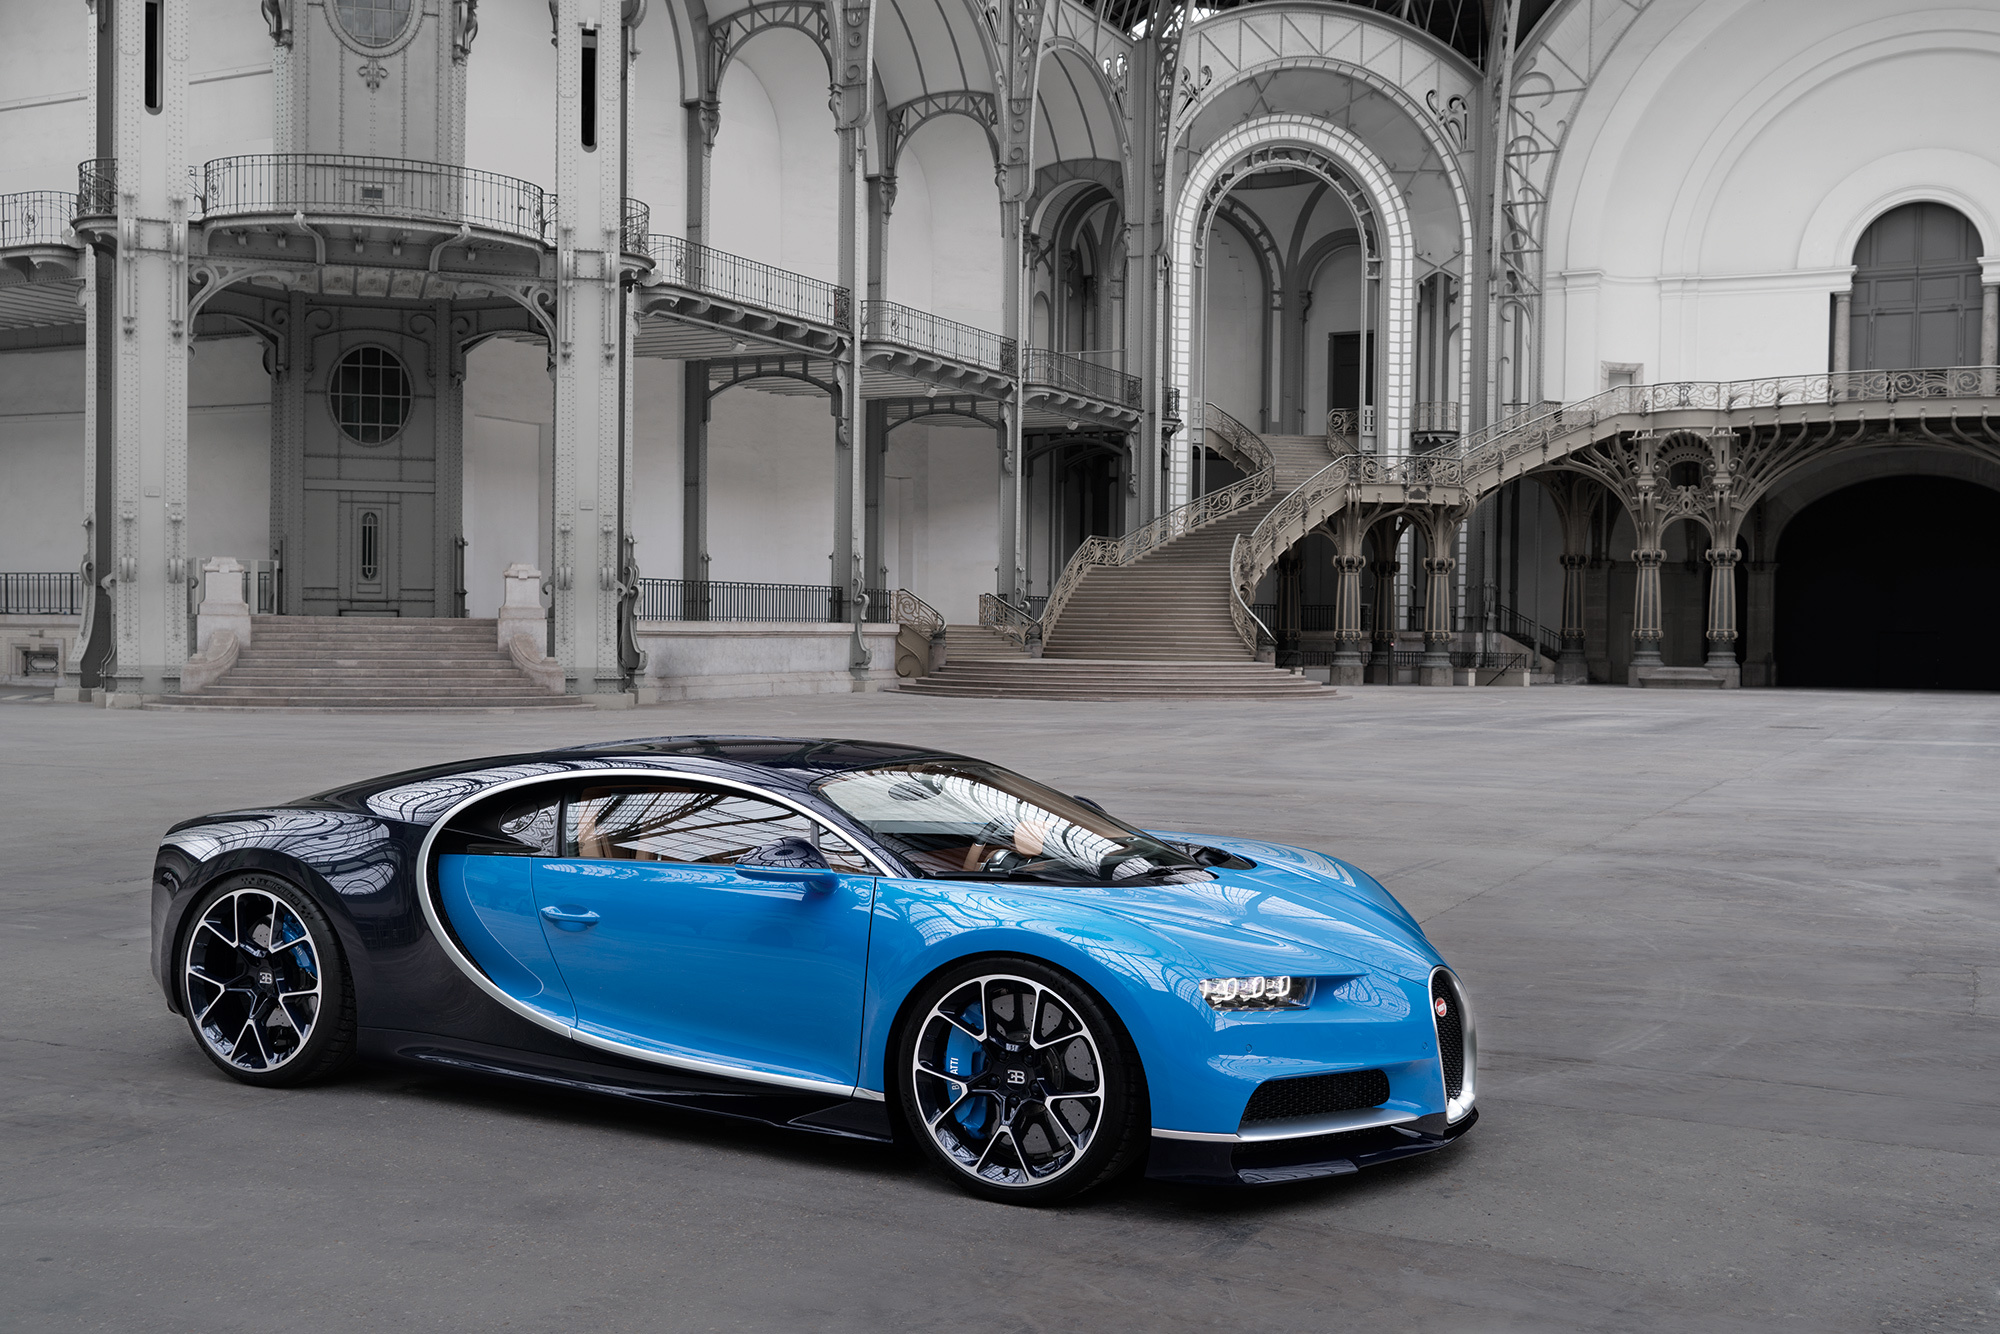 Download Bugatti Chiron 2017 Hd Wallpapers Download 2000x1334 79